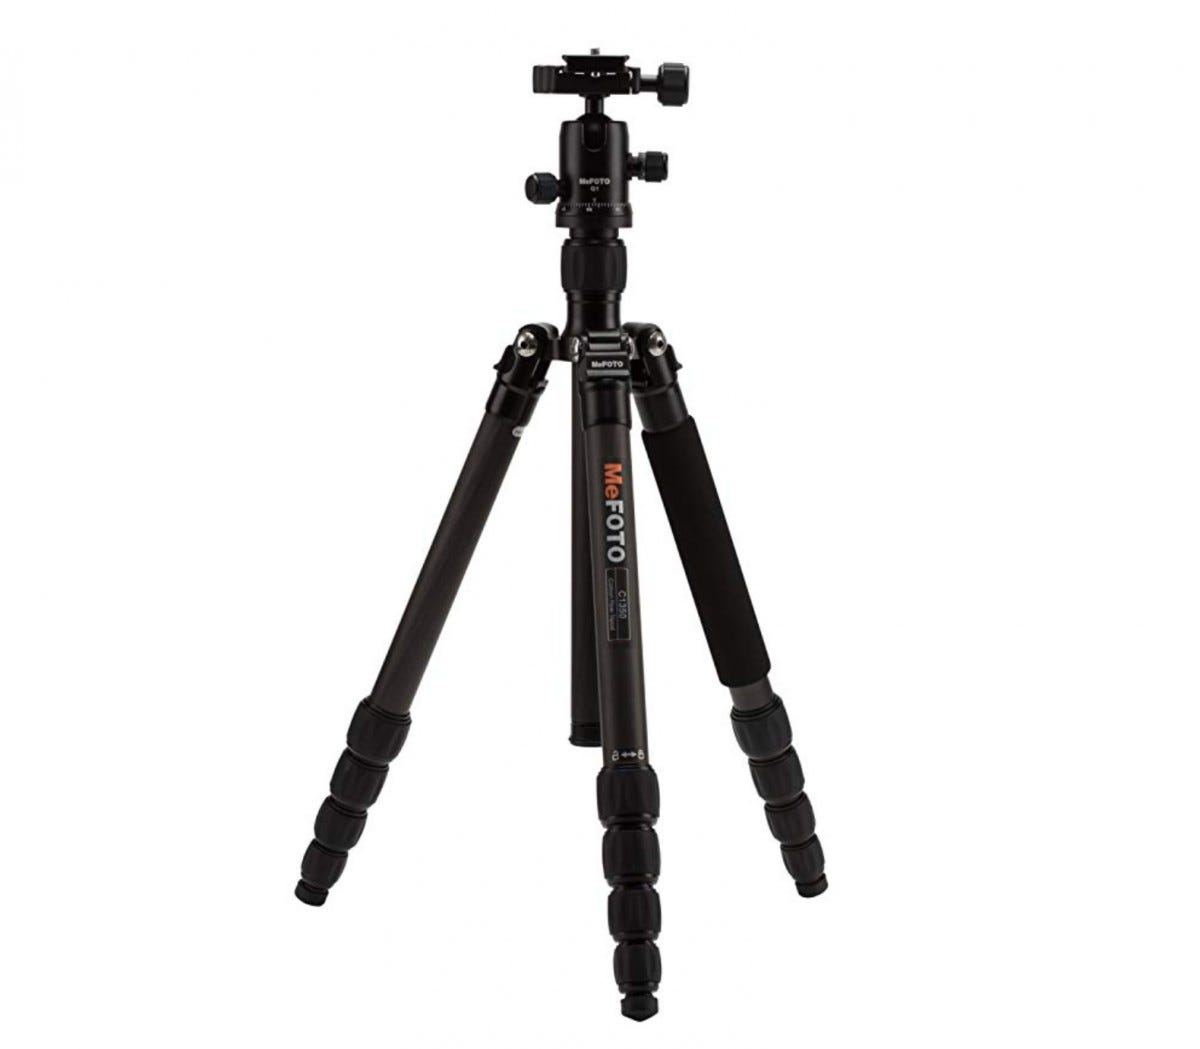 Black travel tripod